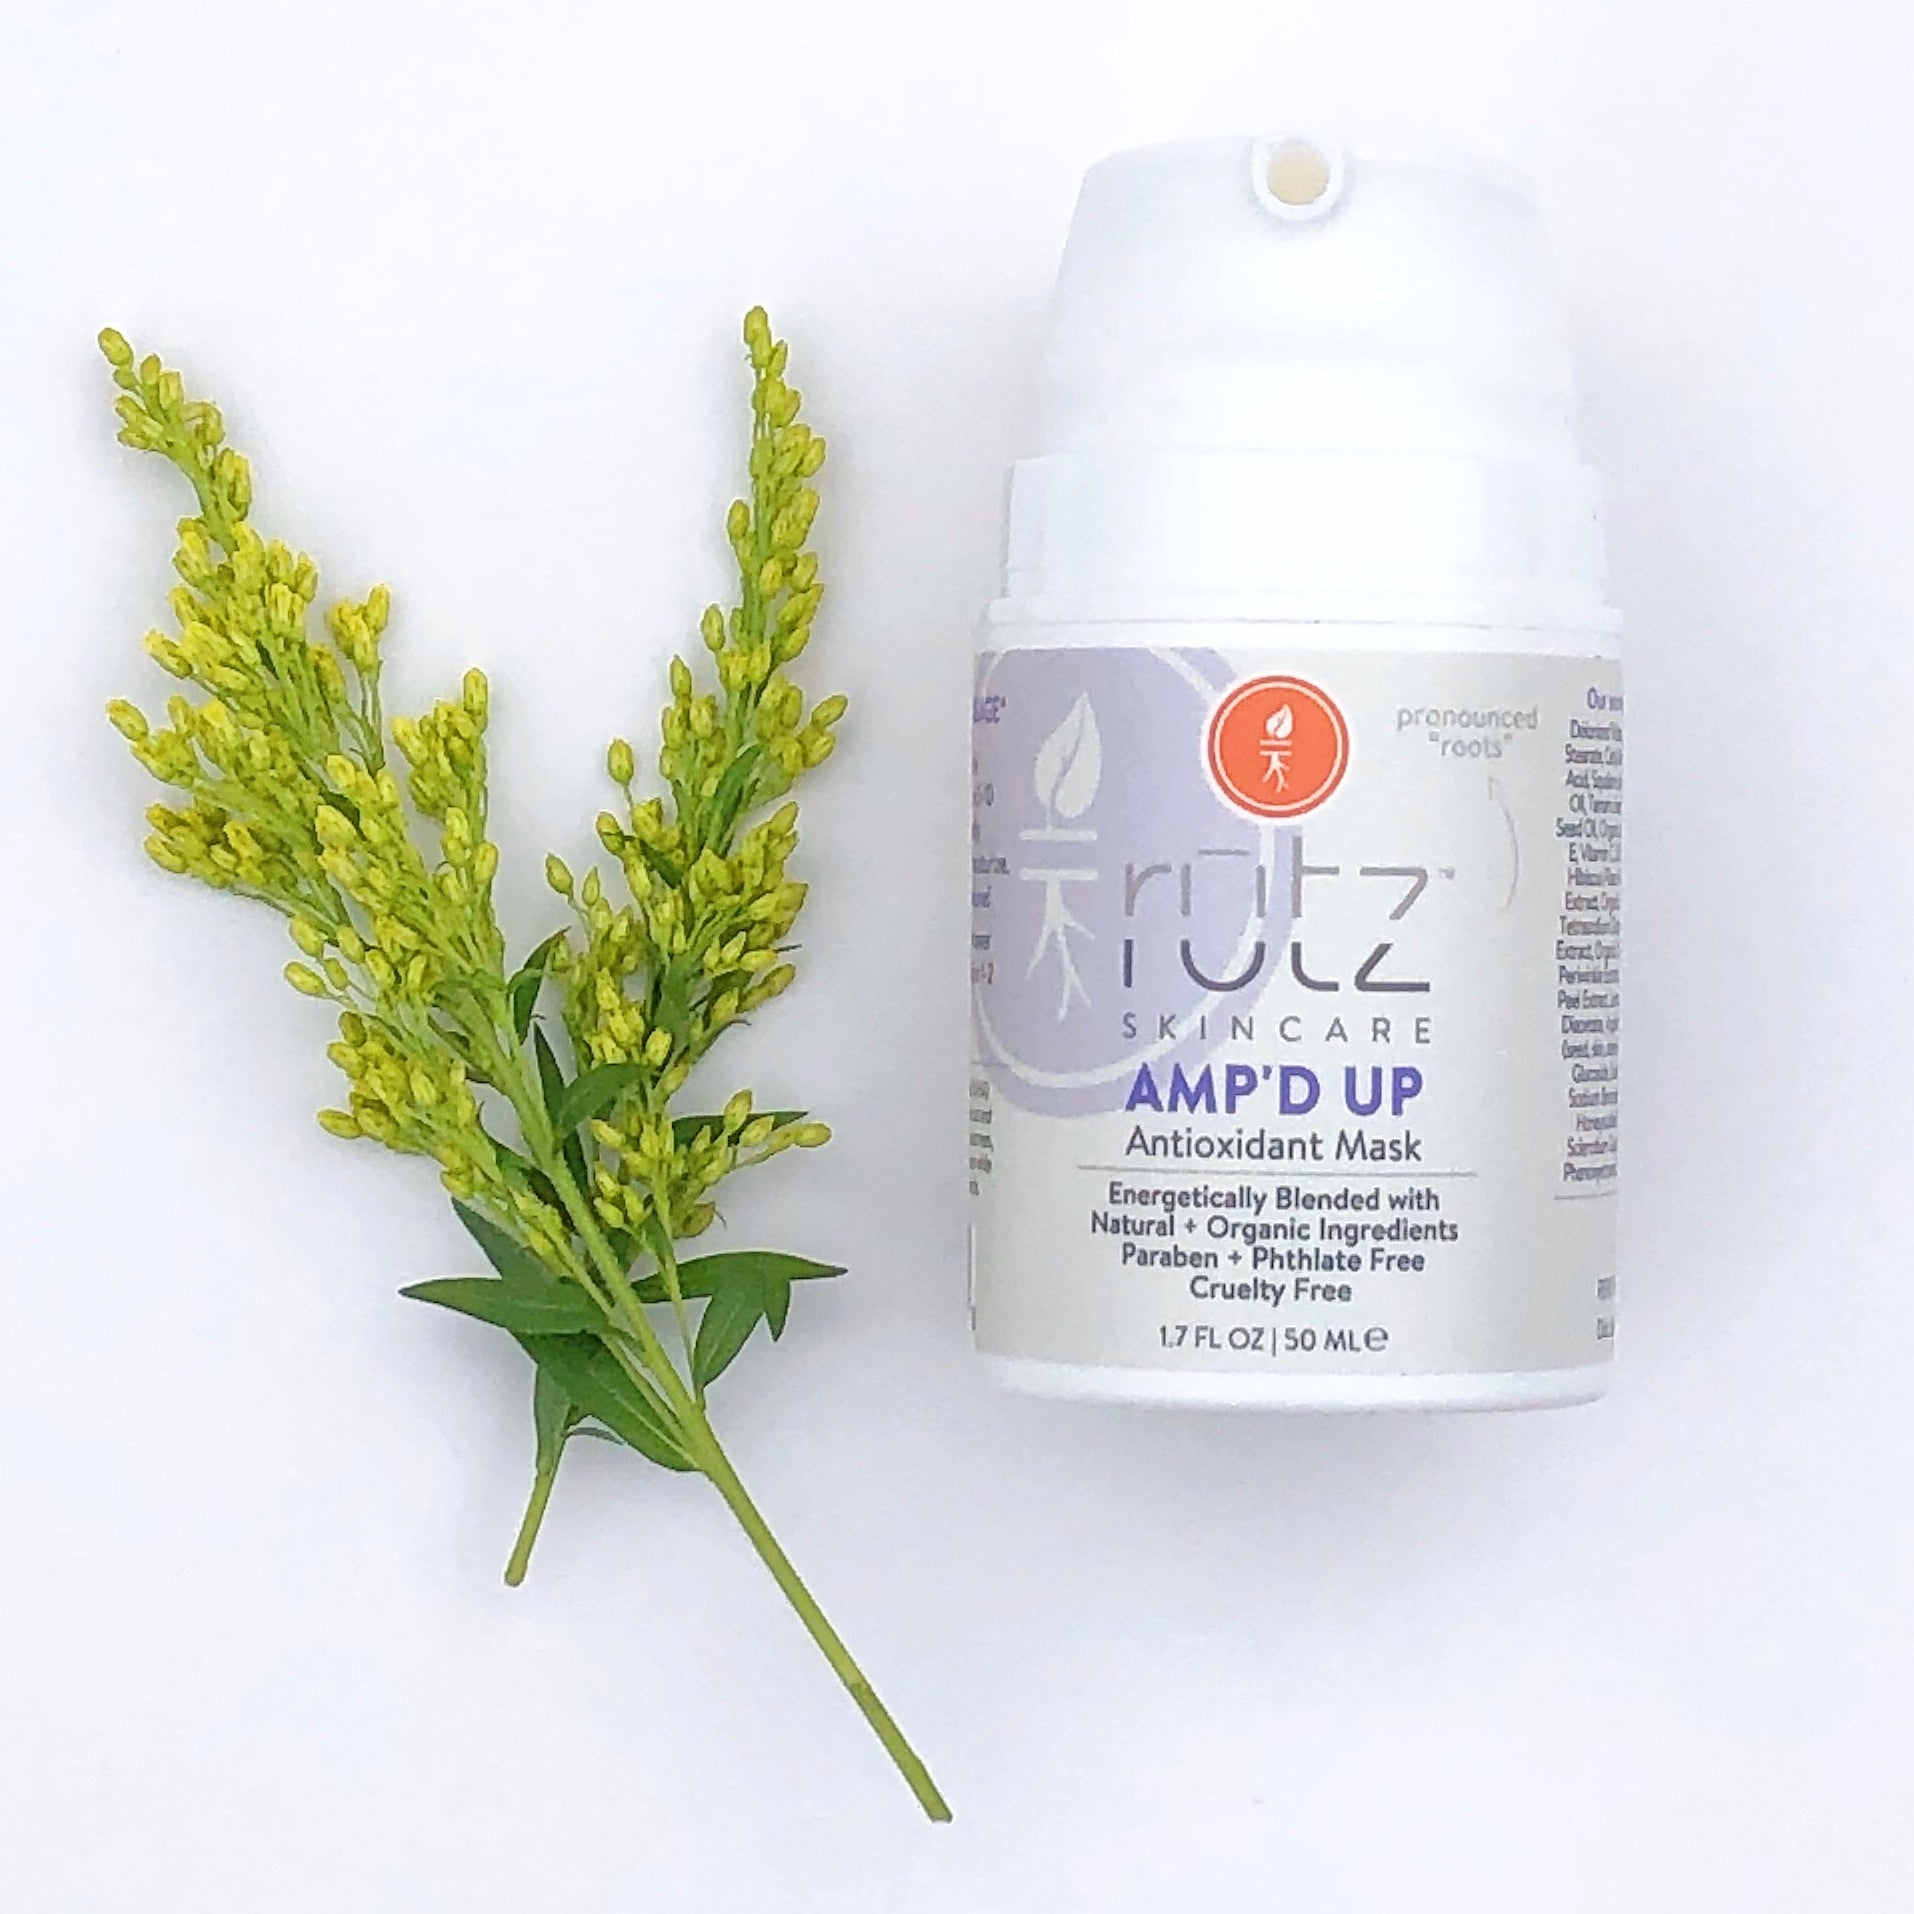 Amp'd Up/Antioxidant Mask by Rutz Naturals